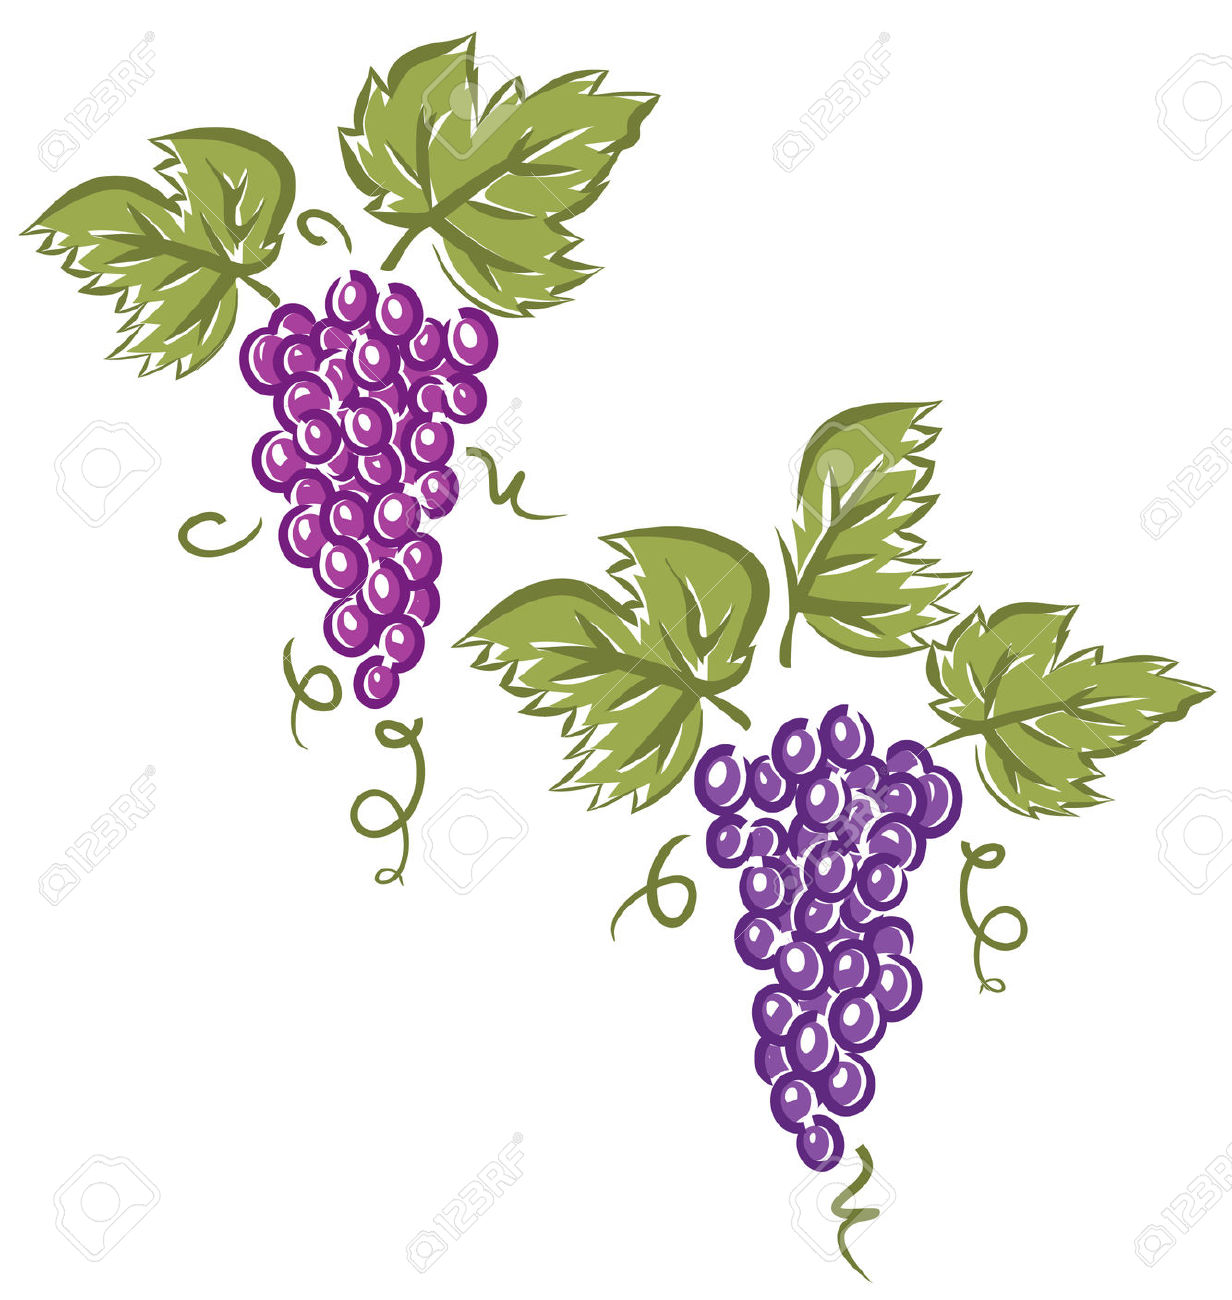 Vineyard Clipart Vector.